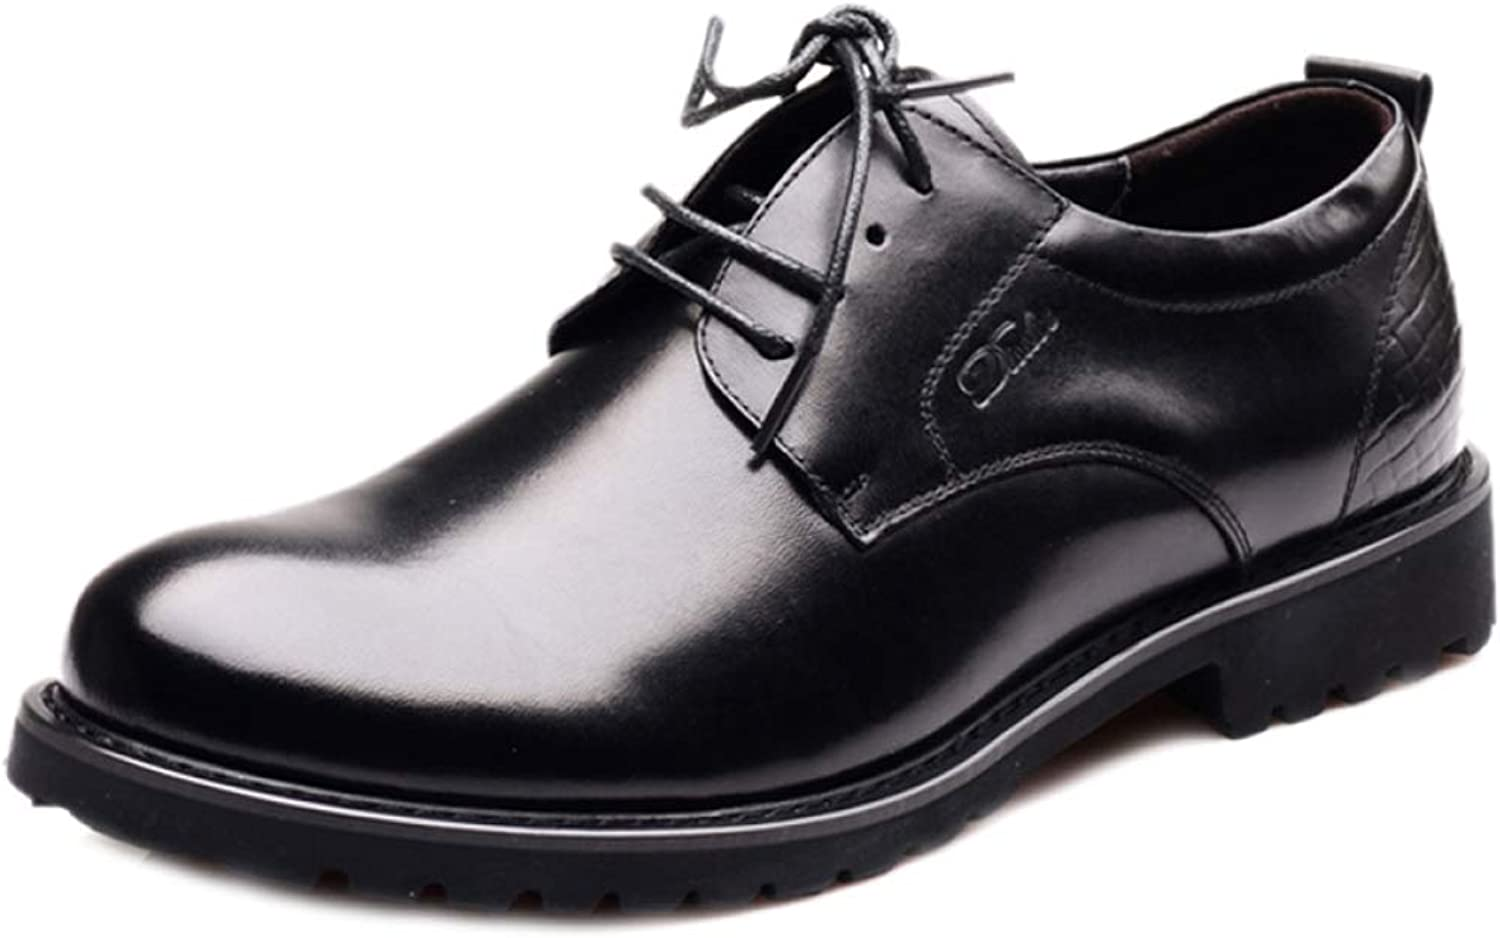 Men's Lace Derby shoes Business Casual Workwear shoes Formal Office Classic Leather shoes